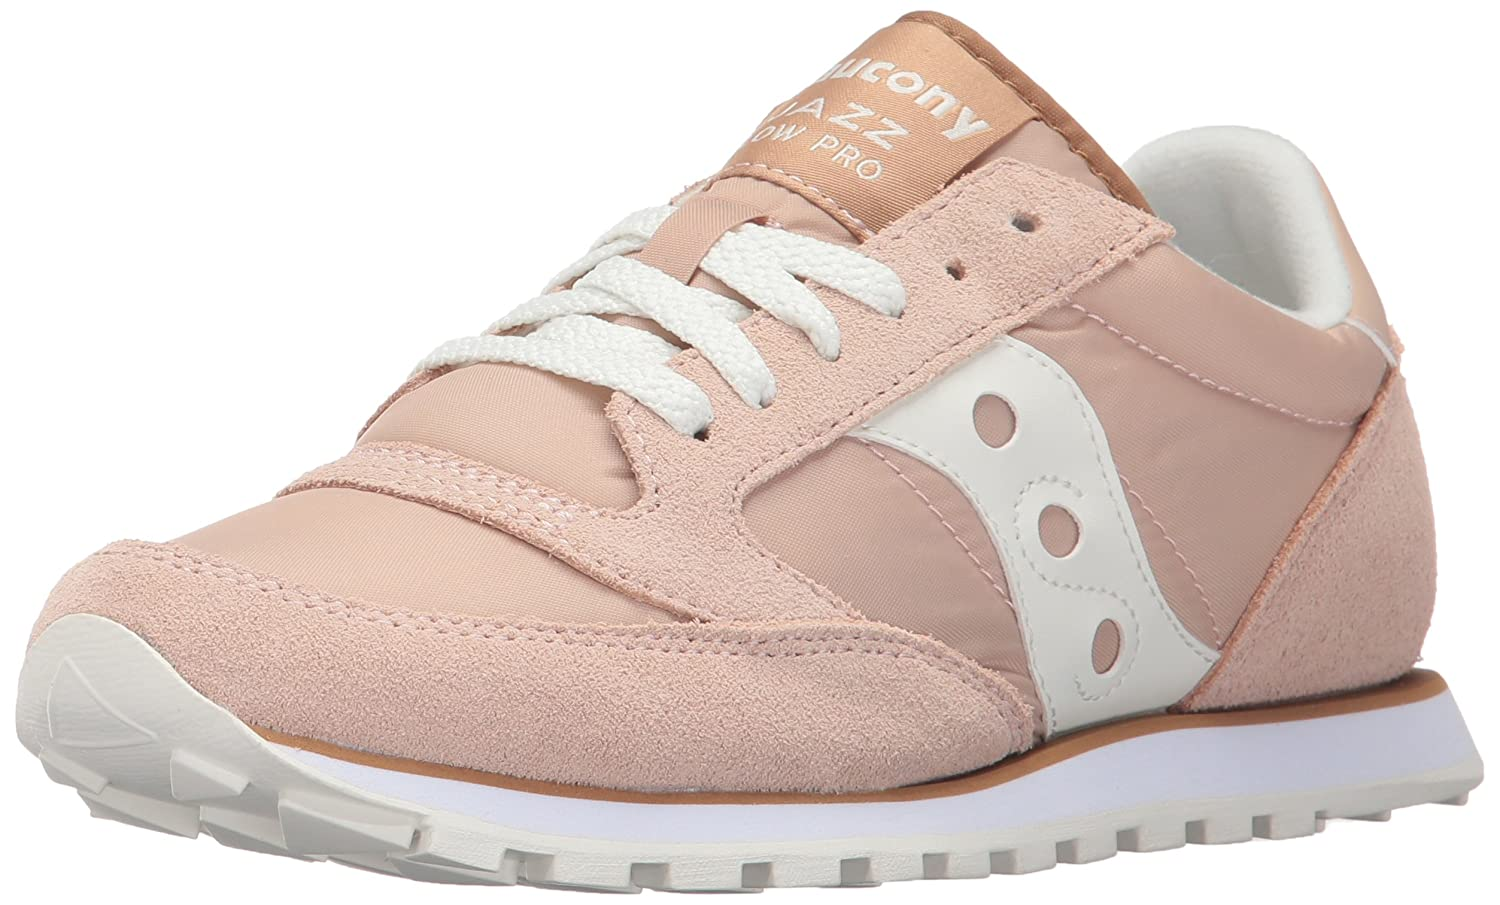 Saucony Originals Women's Jazz Lowpro Sneaker B01N52VFXE 8 B(M) US|Tan White